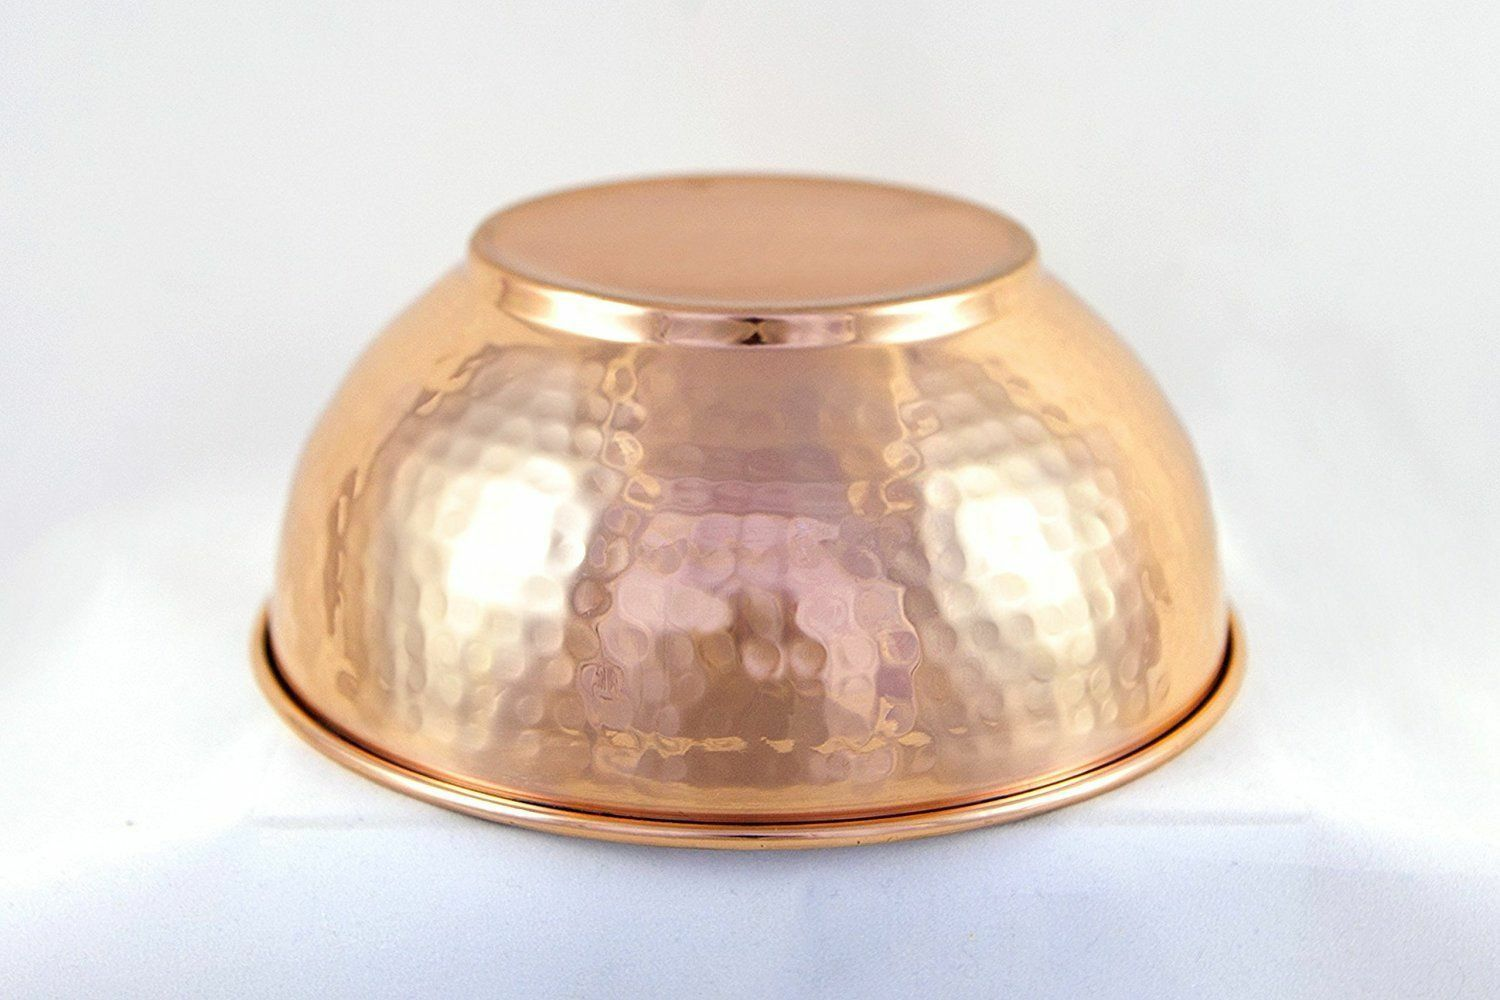 Indian Food Daal Steel Hammered Copper Dish Serving Handi Bowl 400 ML